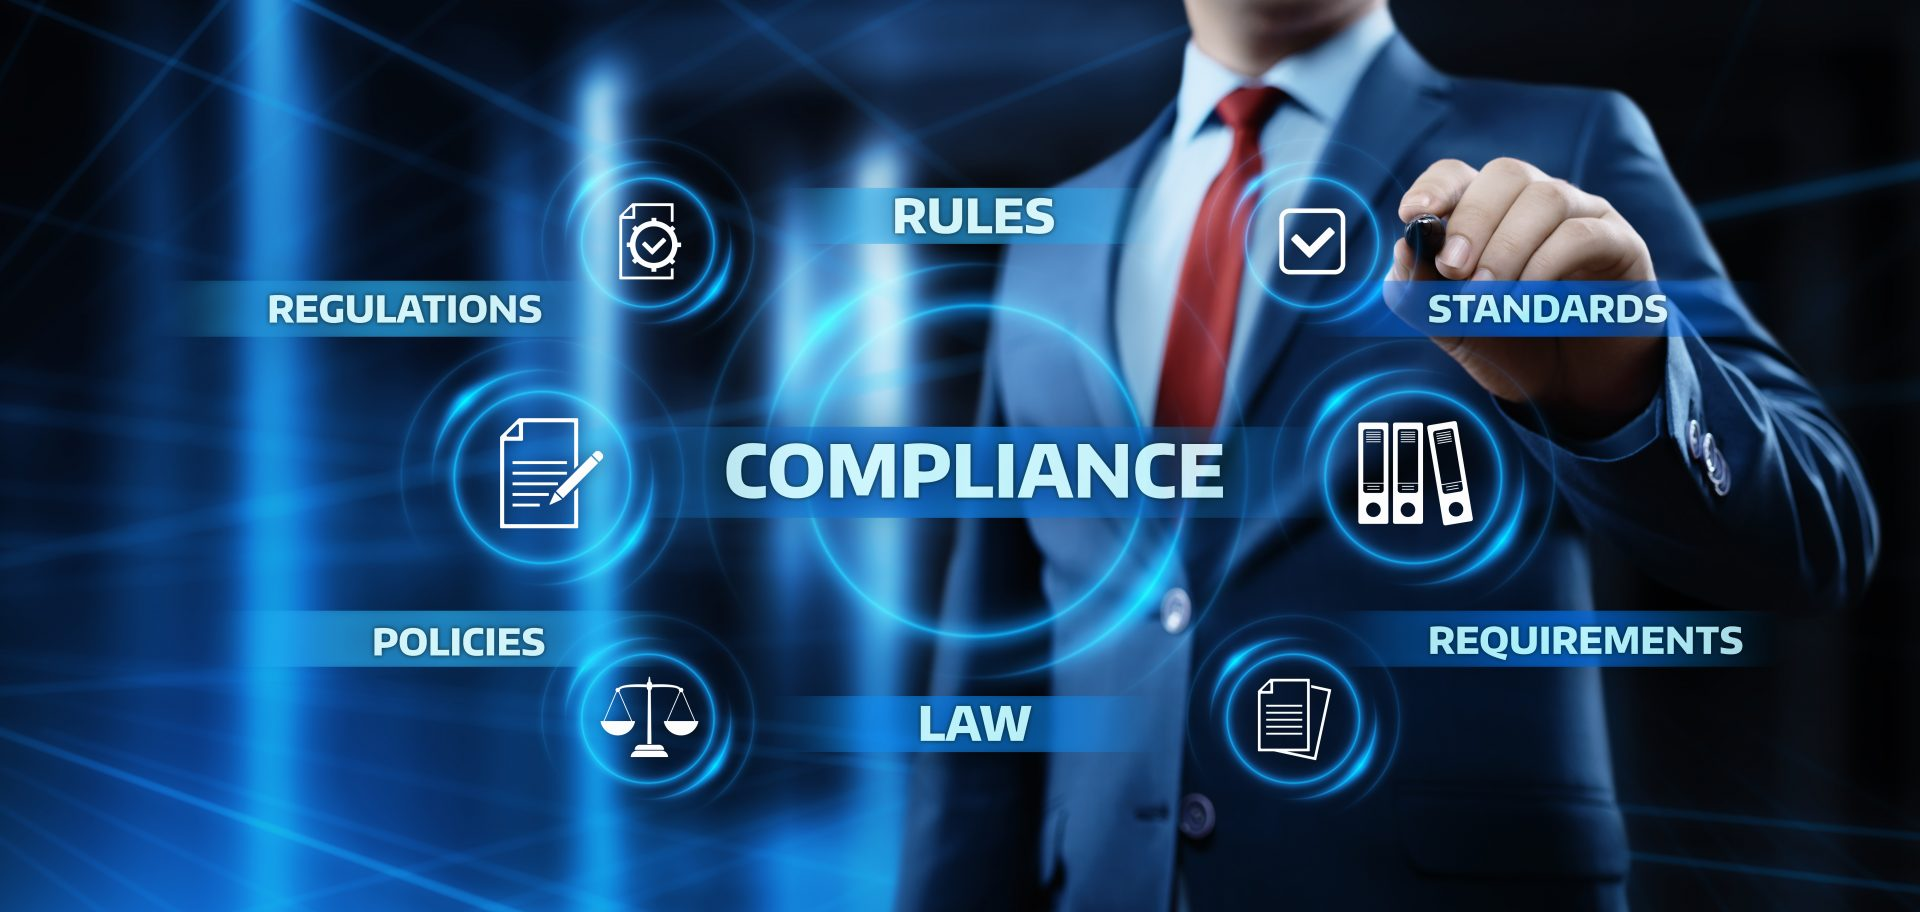 EPL Compliance Regulations and Guidelines - EPL